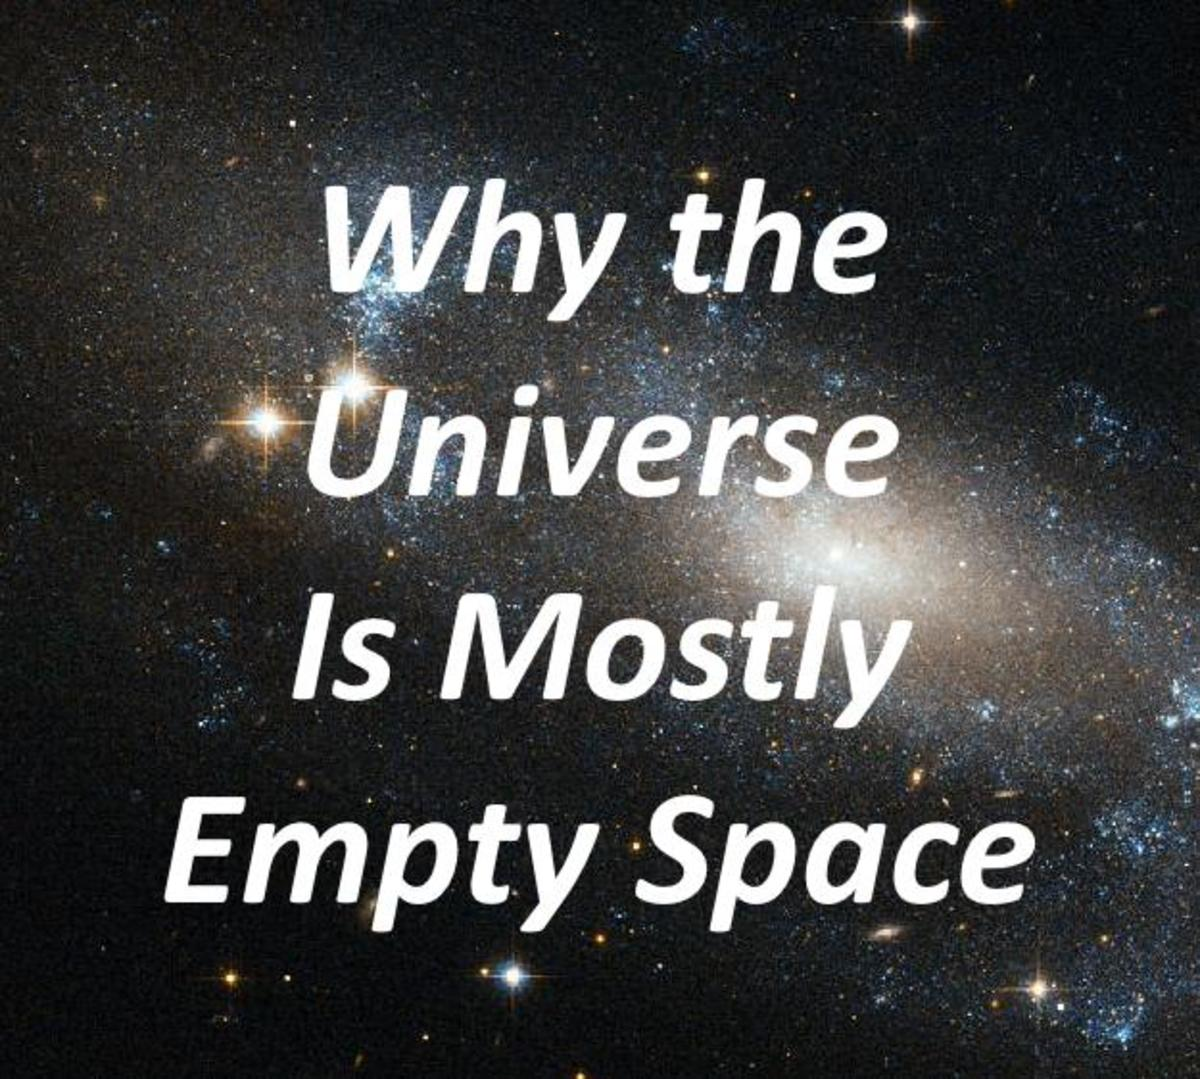 Why the Universe Is Mostly Empty Space